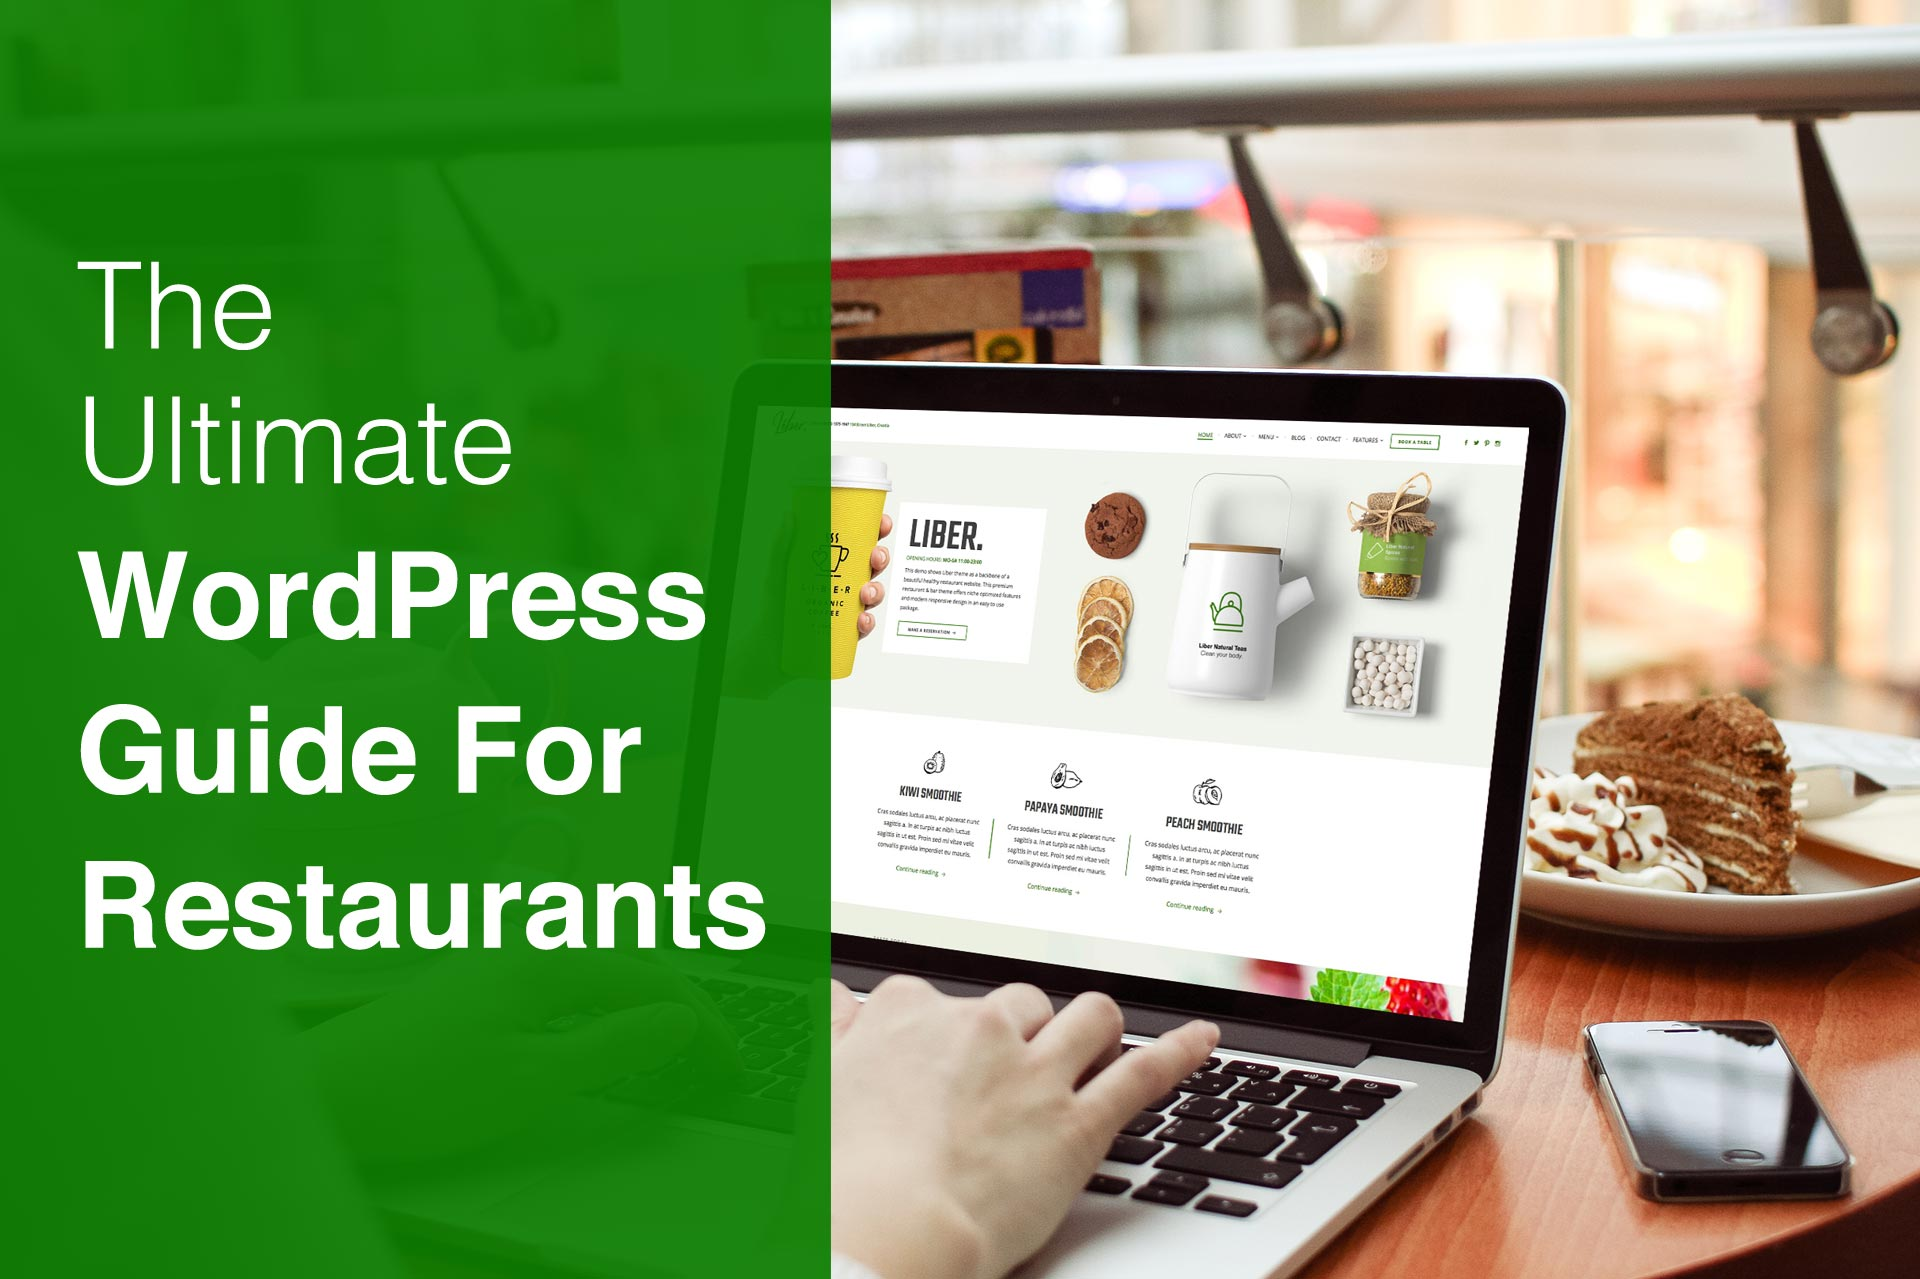 The Ultimate WordPress Guide for Restaurants